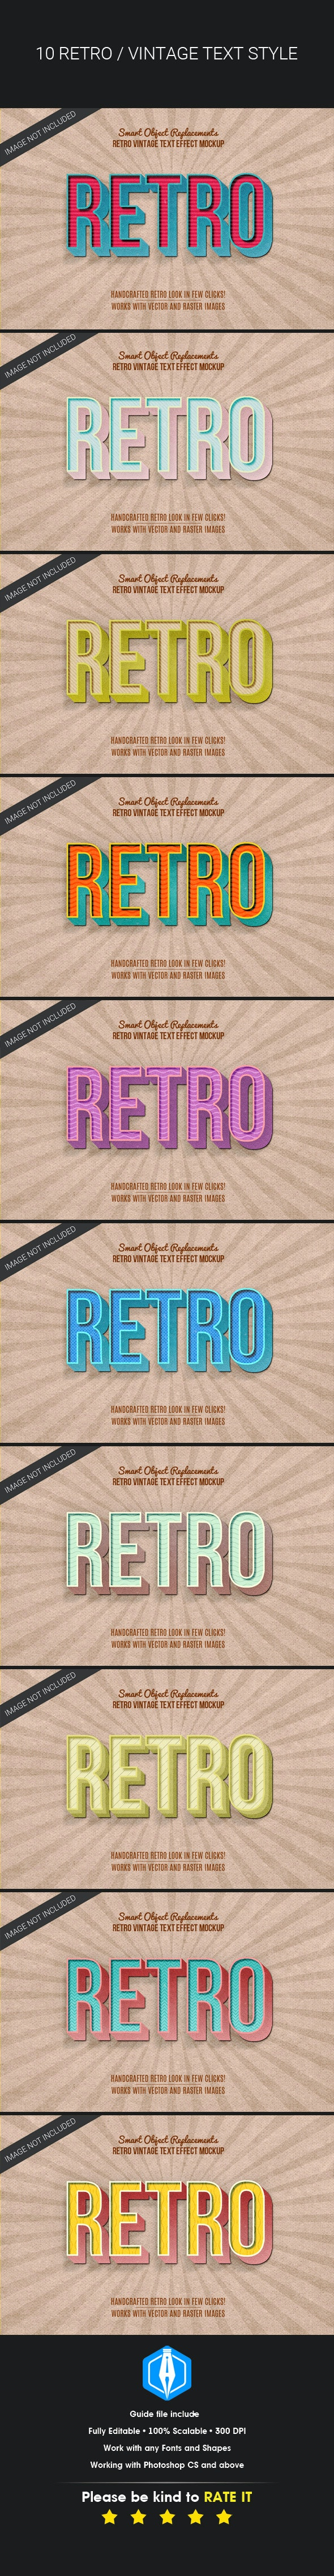 3D Retro Vintage Text Effects - Text Effects Actions